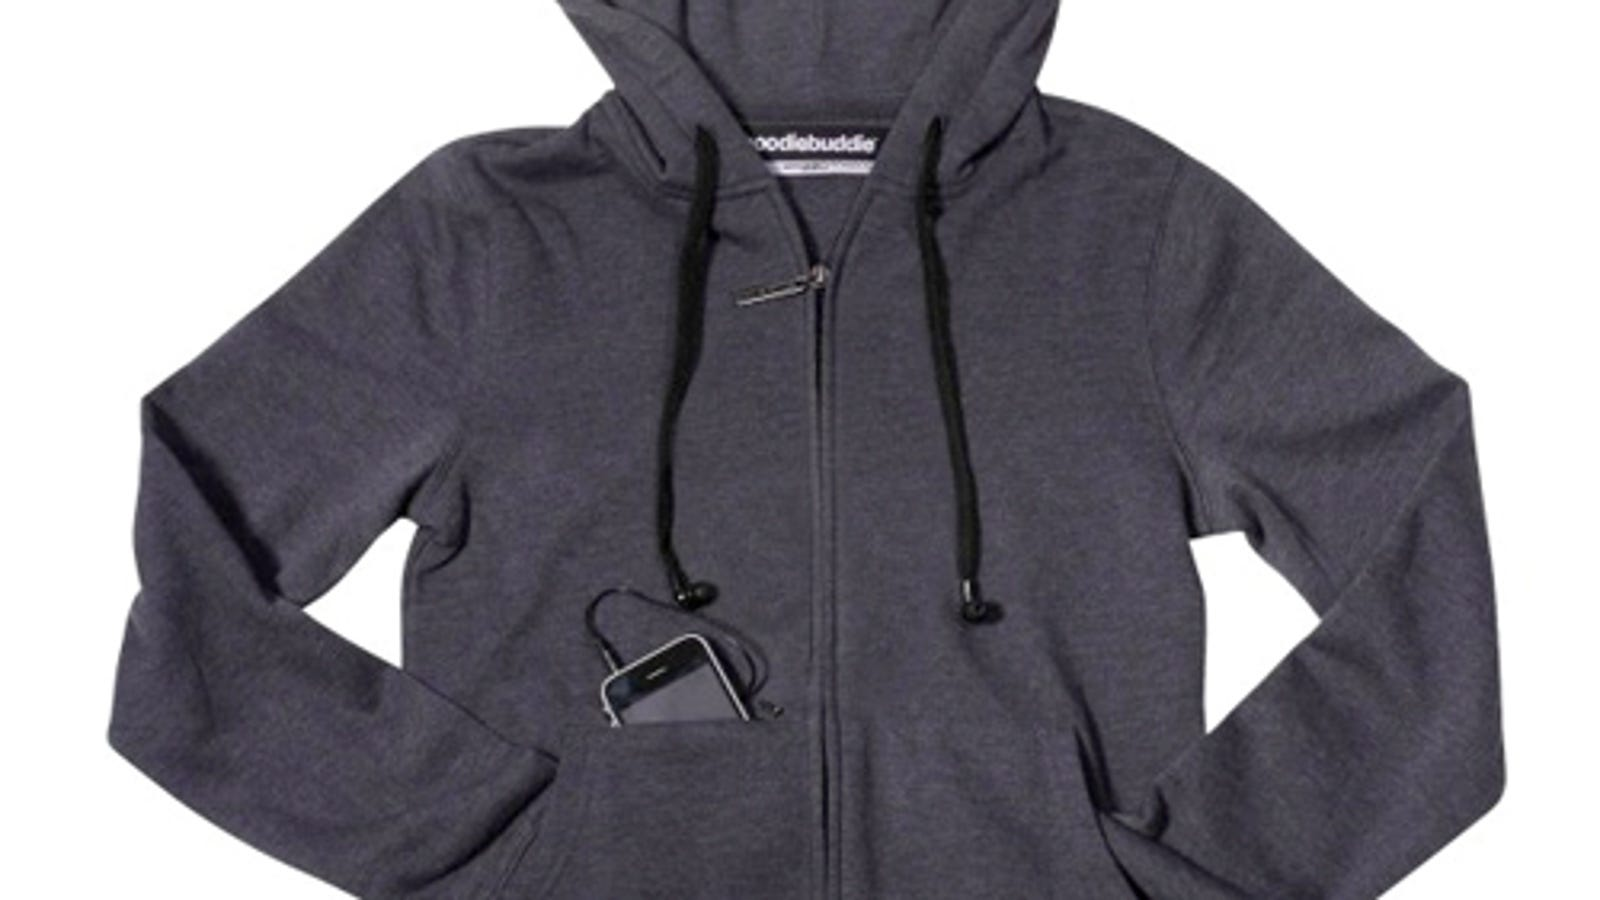 headphones wireless logitech - Hoodie With Earbuds Instead of Strings Is Greatest iPod Accessory of All